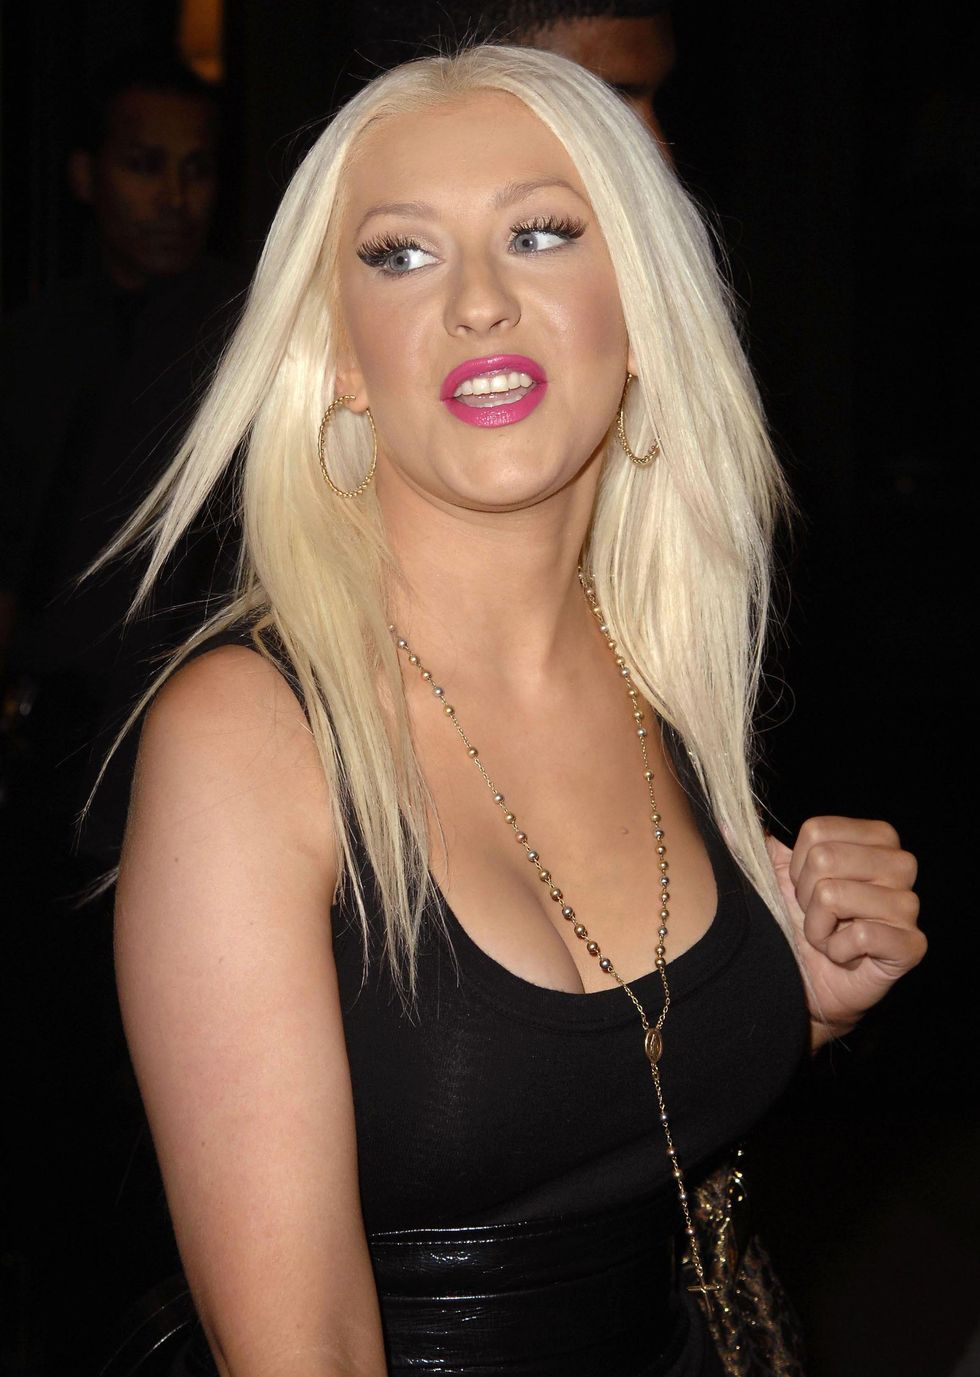 christina-aguilera-cleavage-candids-in-new-york-city-01